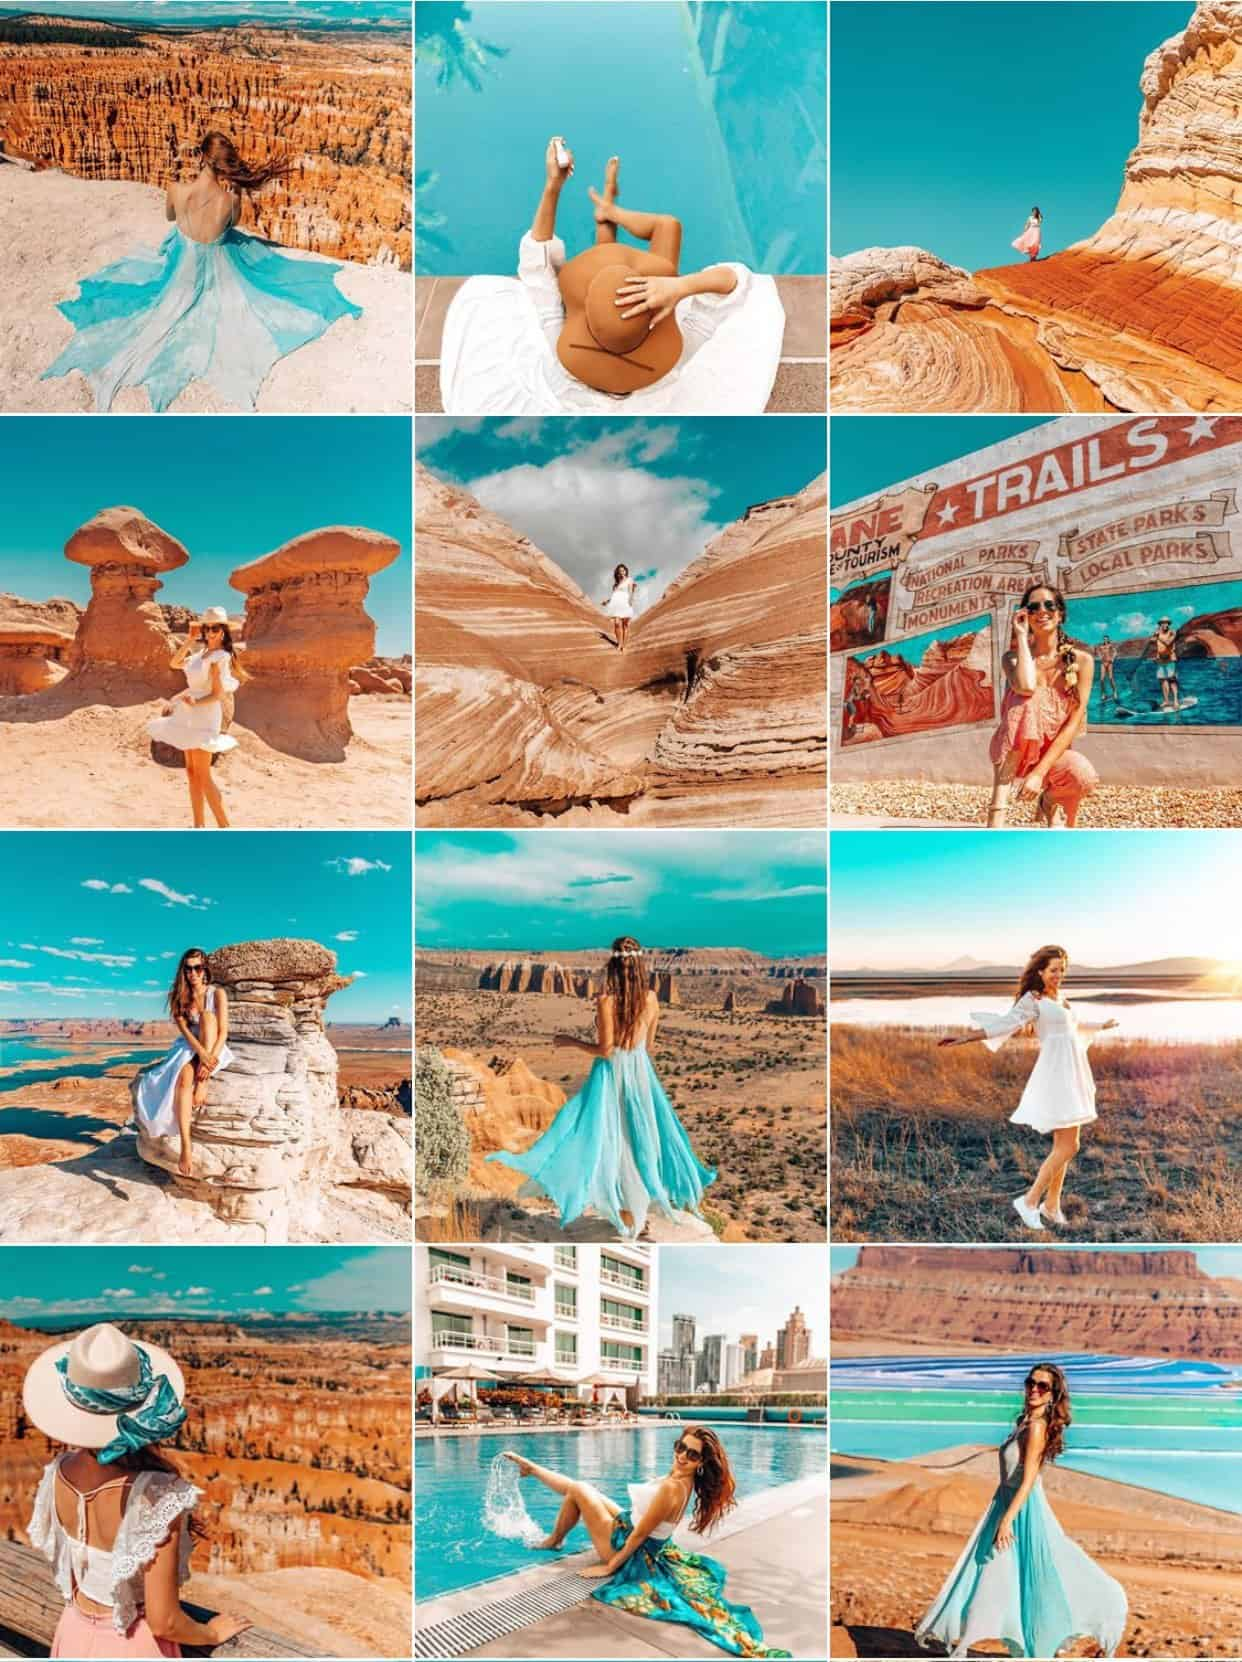 The Next Trip Blue and Orange Instagram Feed